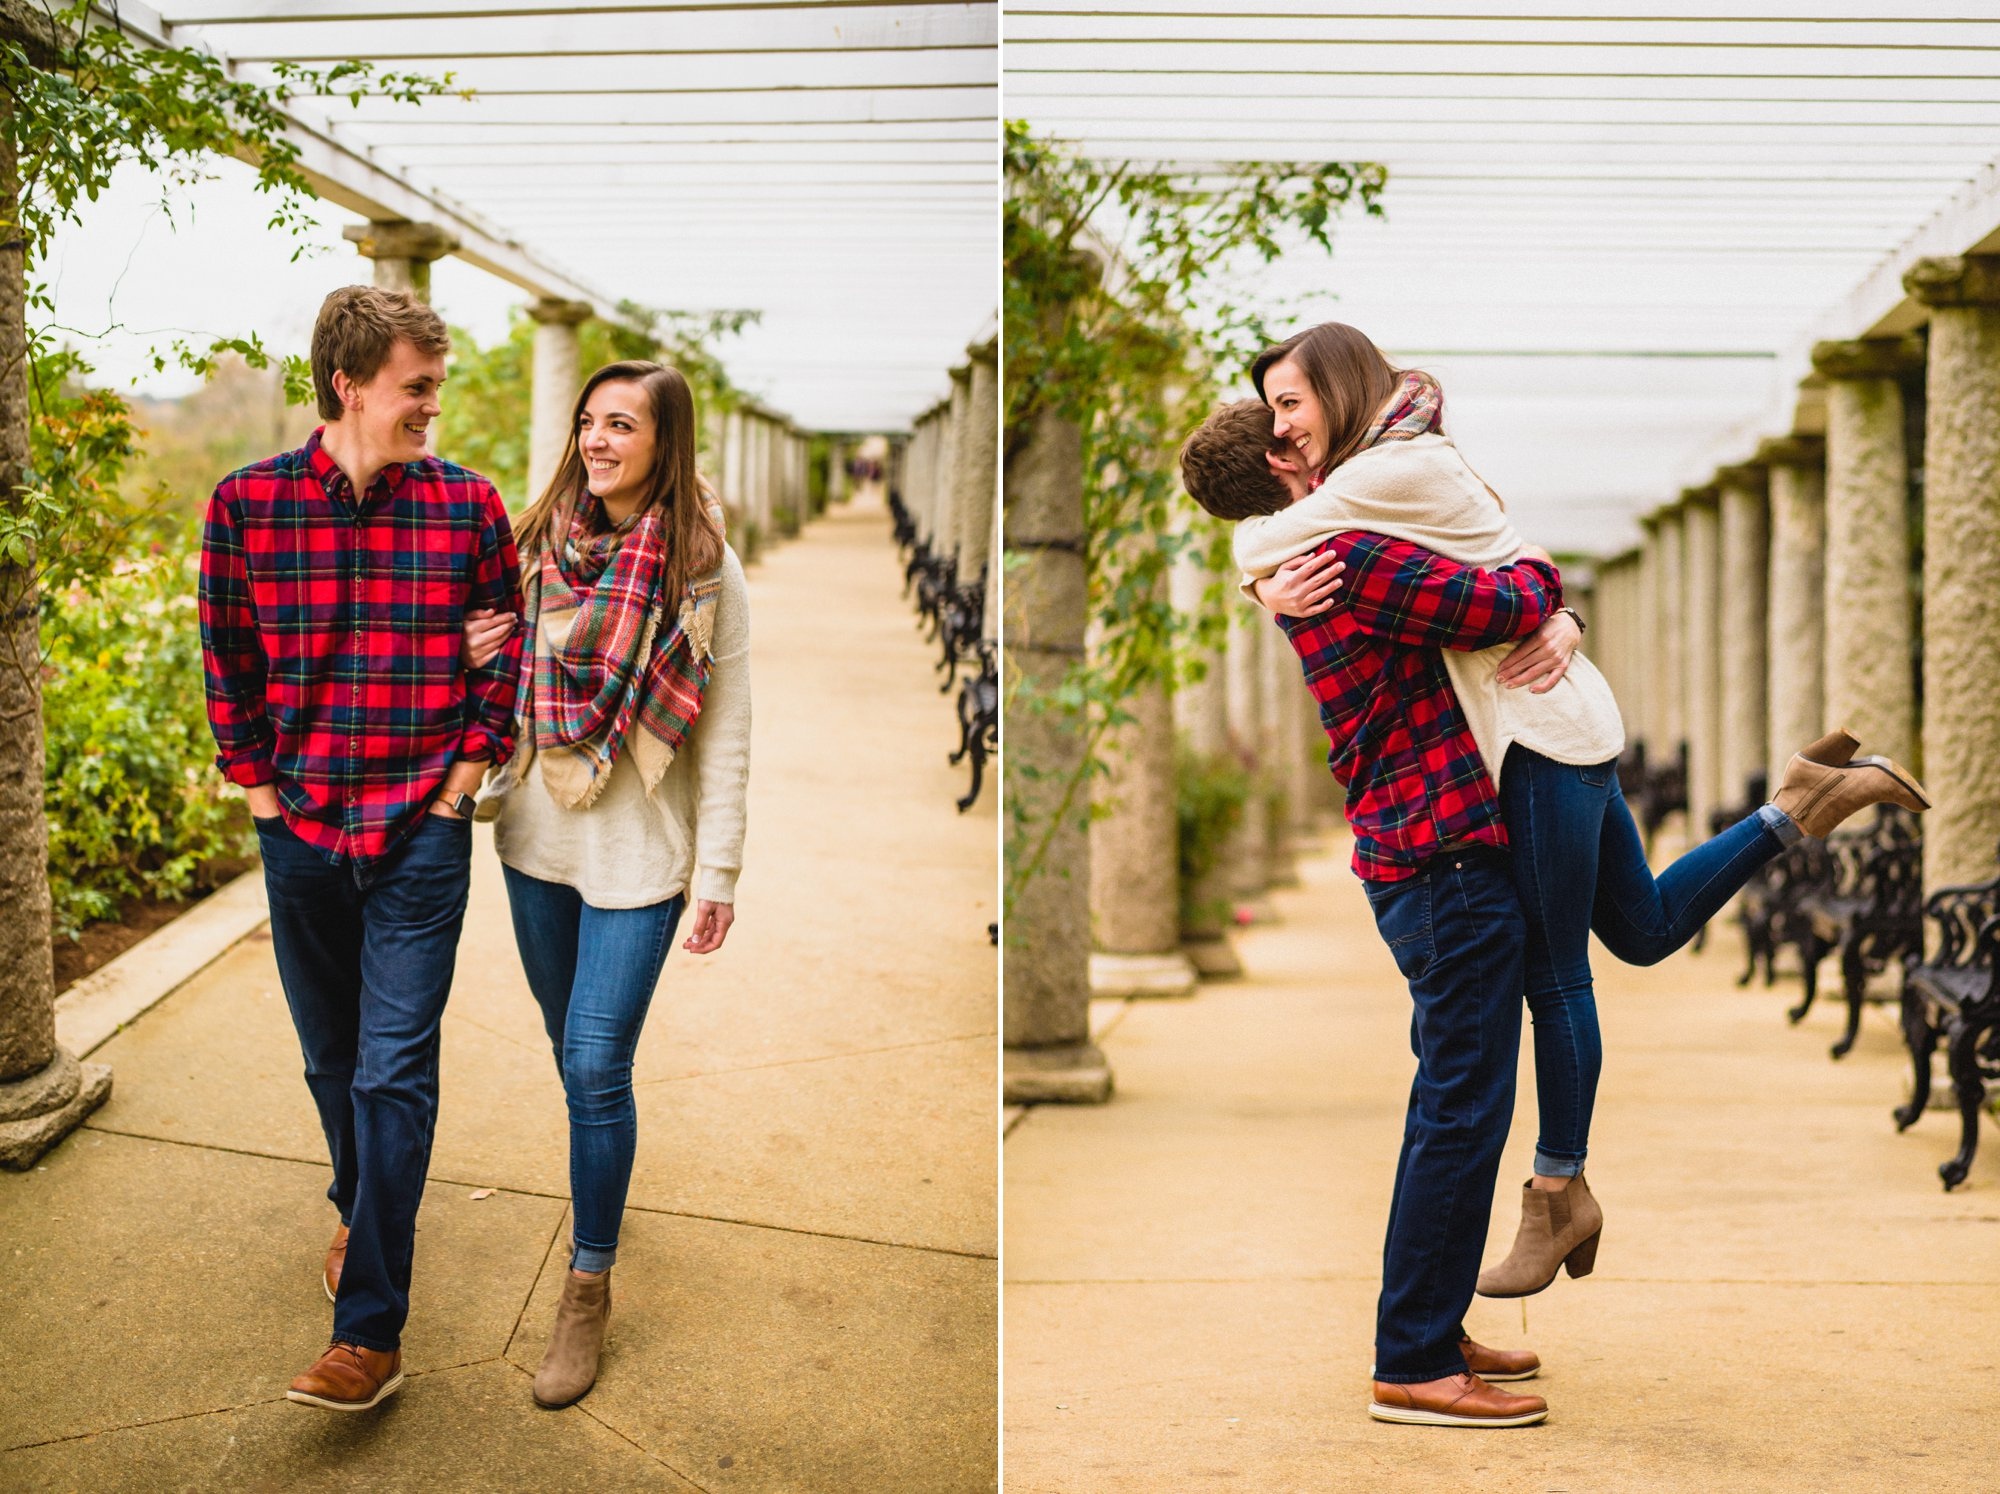 engagement-photography-88-love-stories-22.jpg